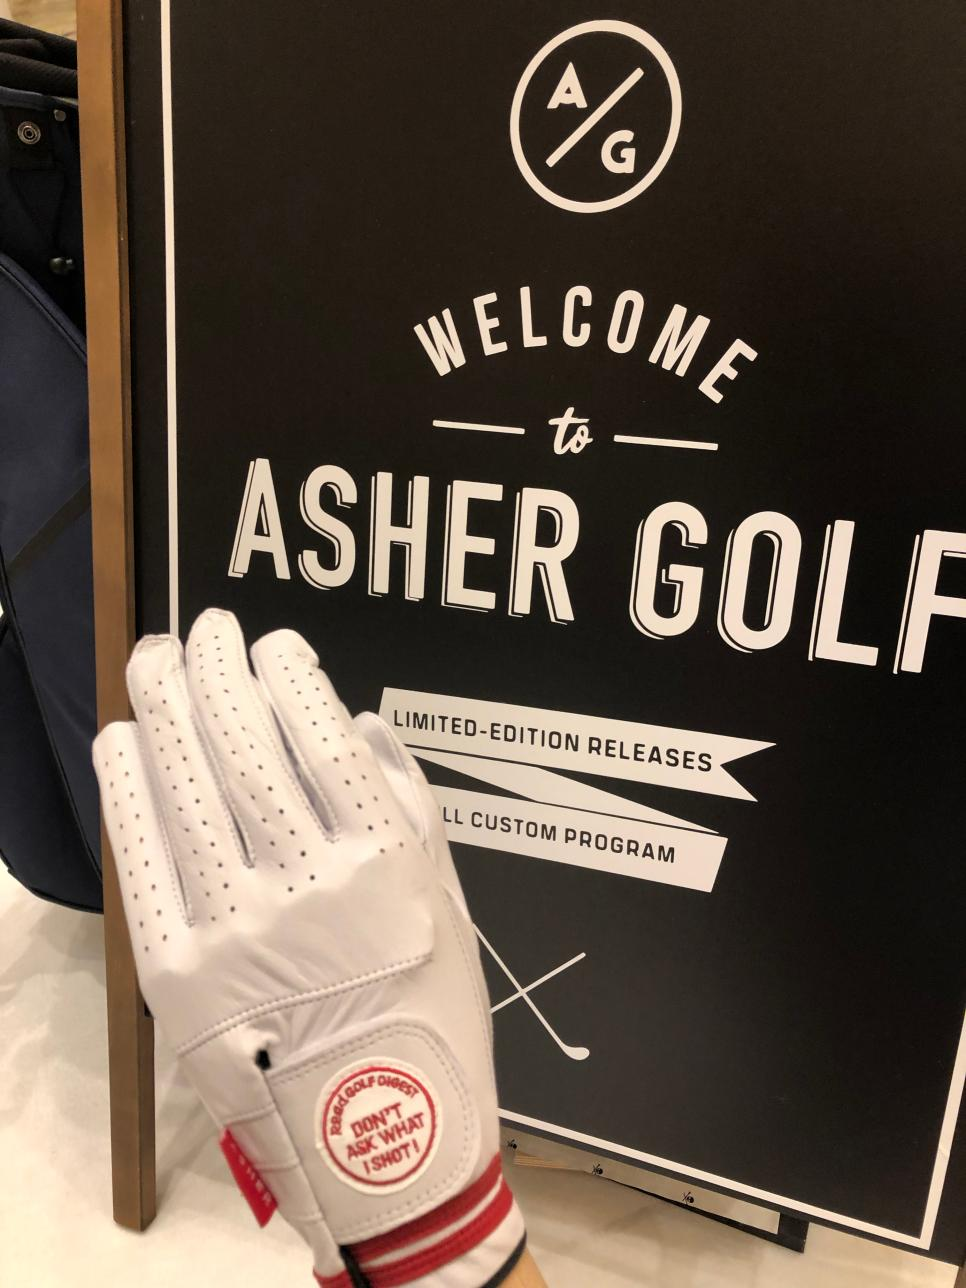 Asher Golf digest select dont ask glove.jpg